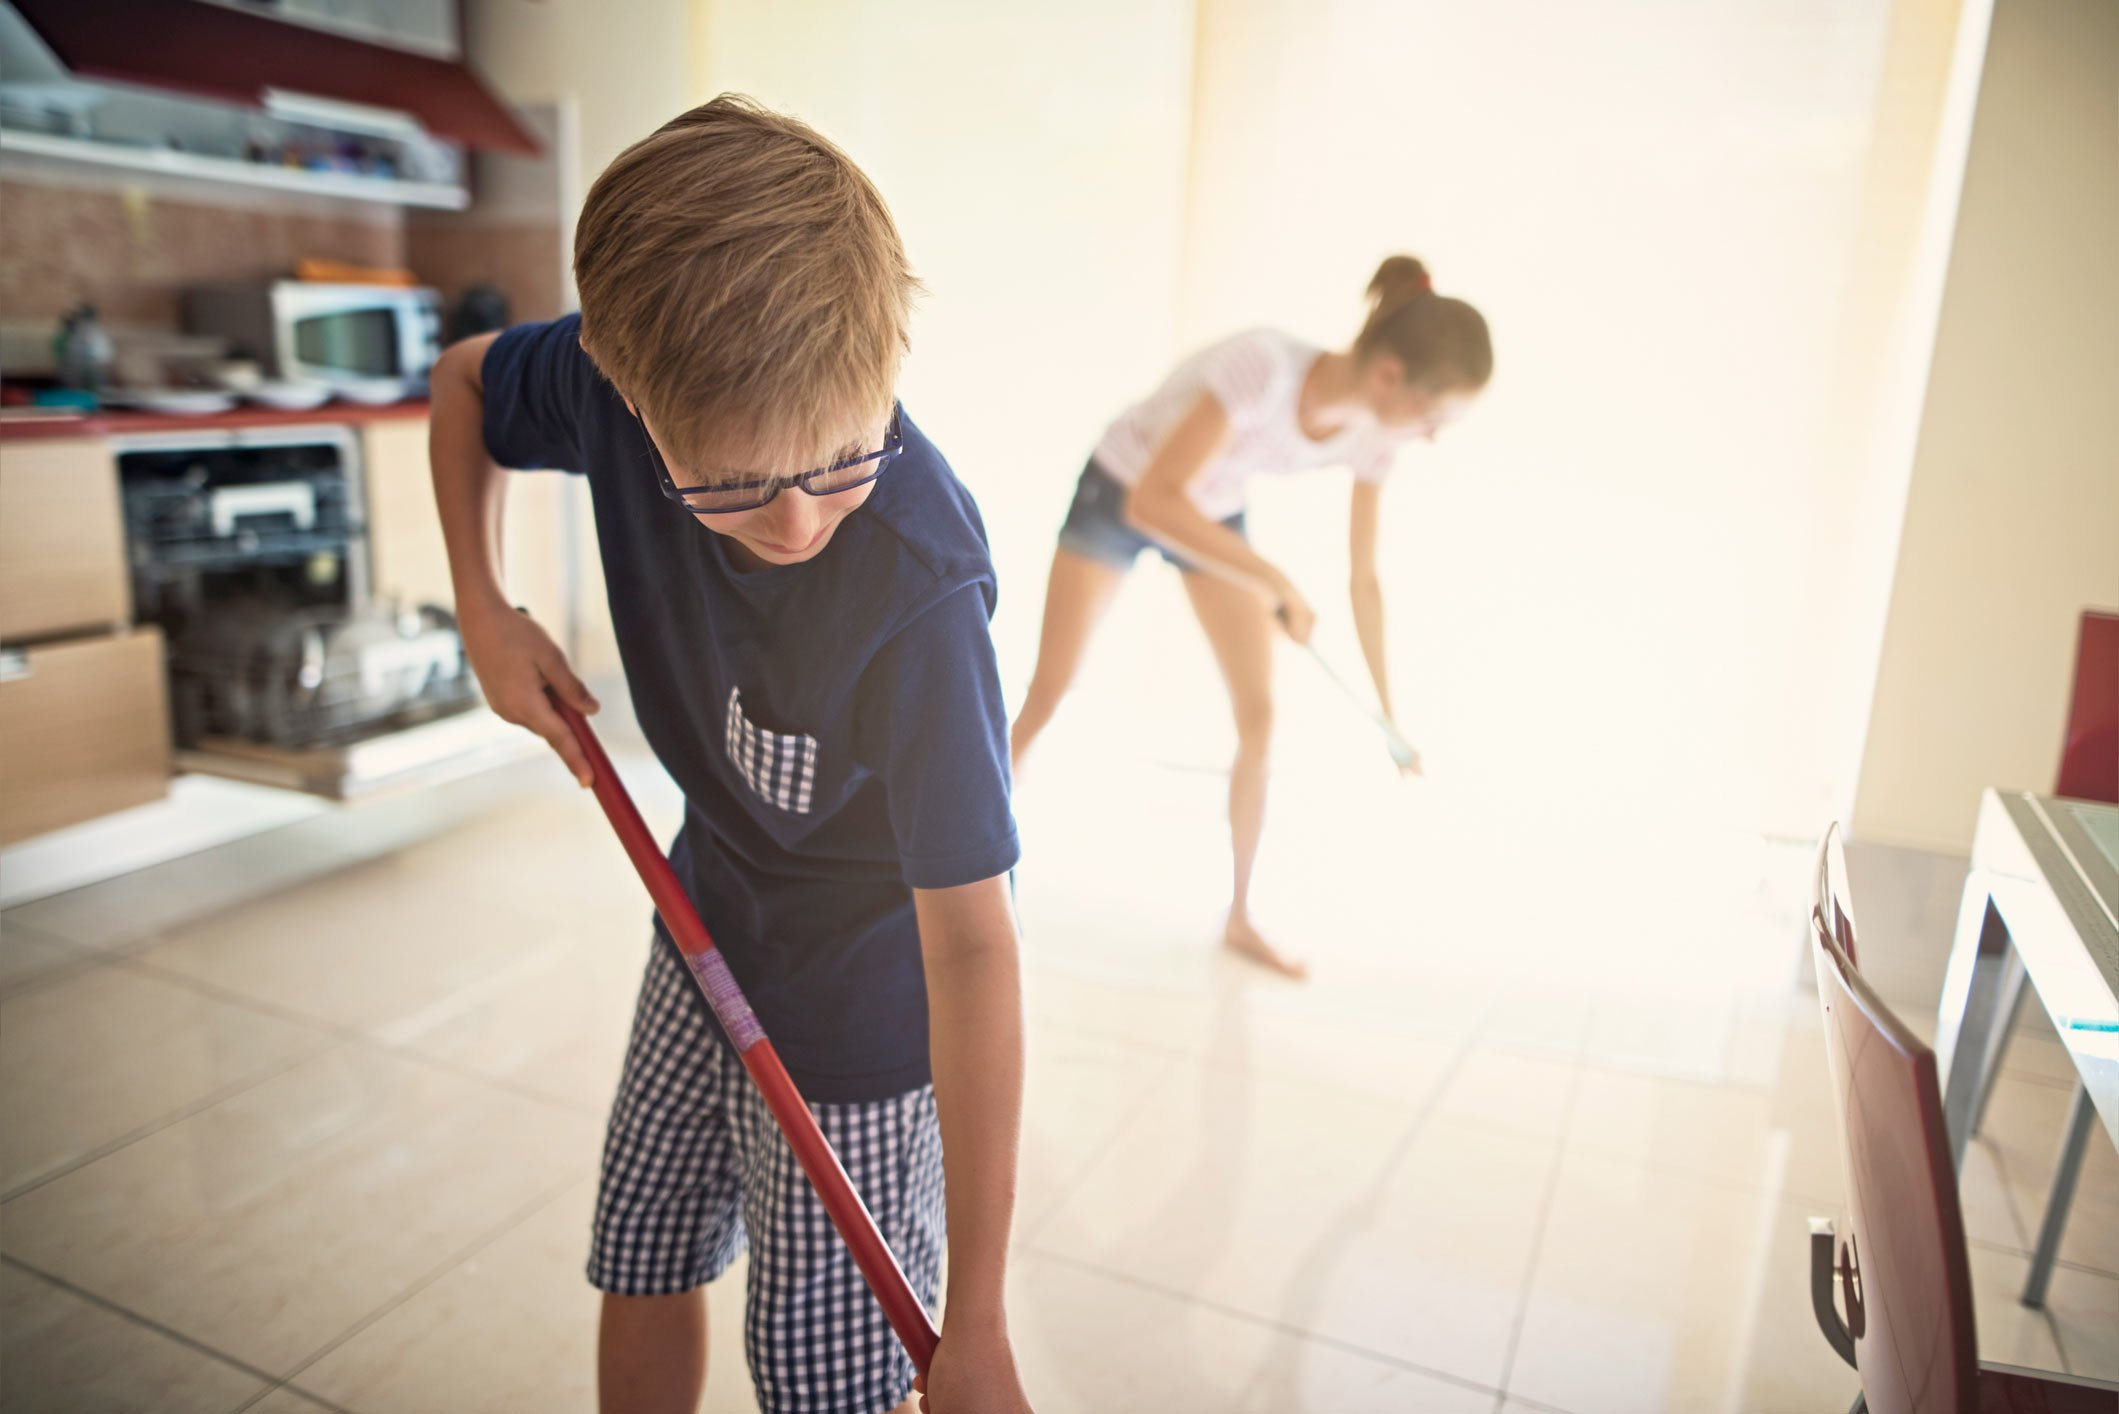 brother and sister mopping floors at home